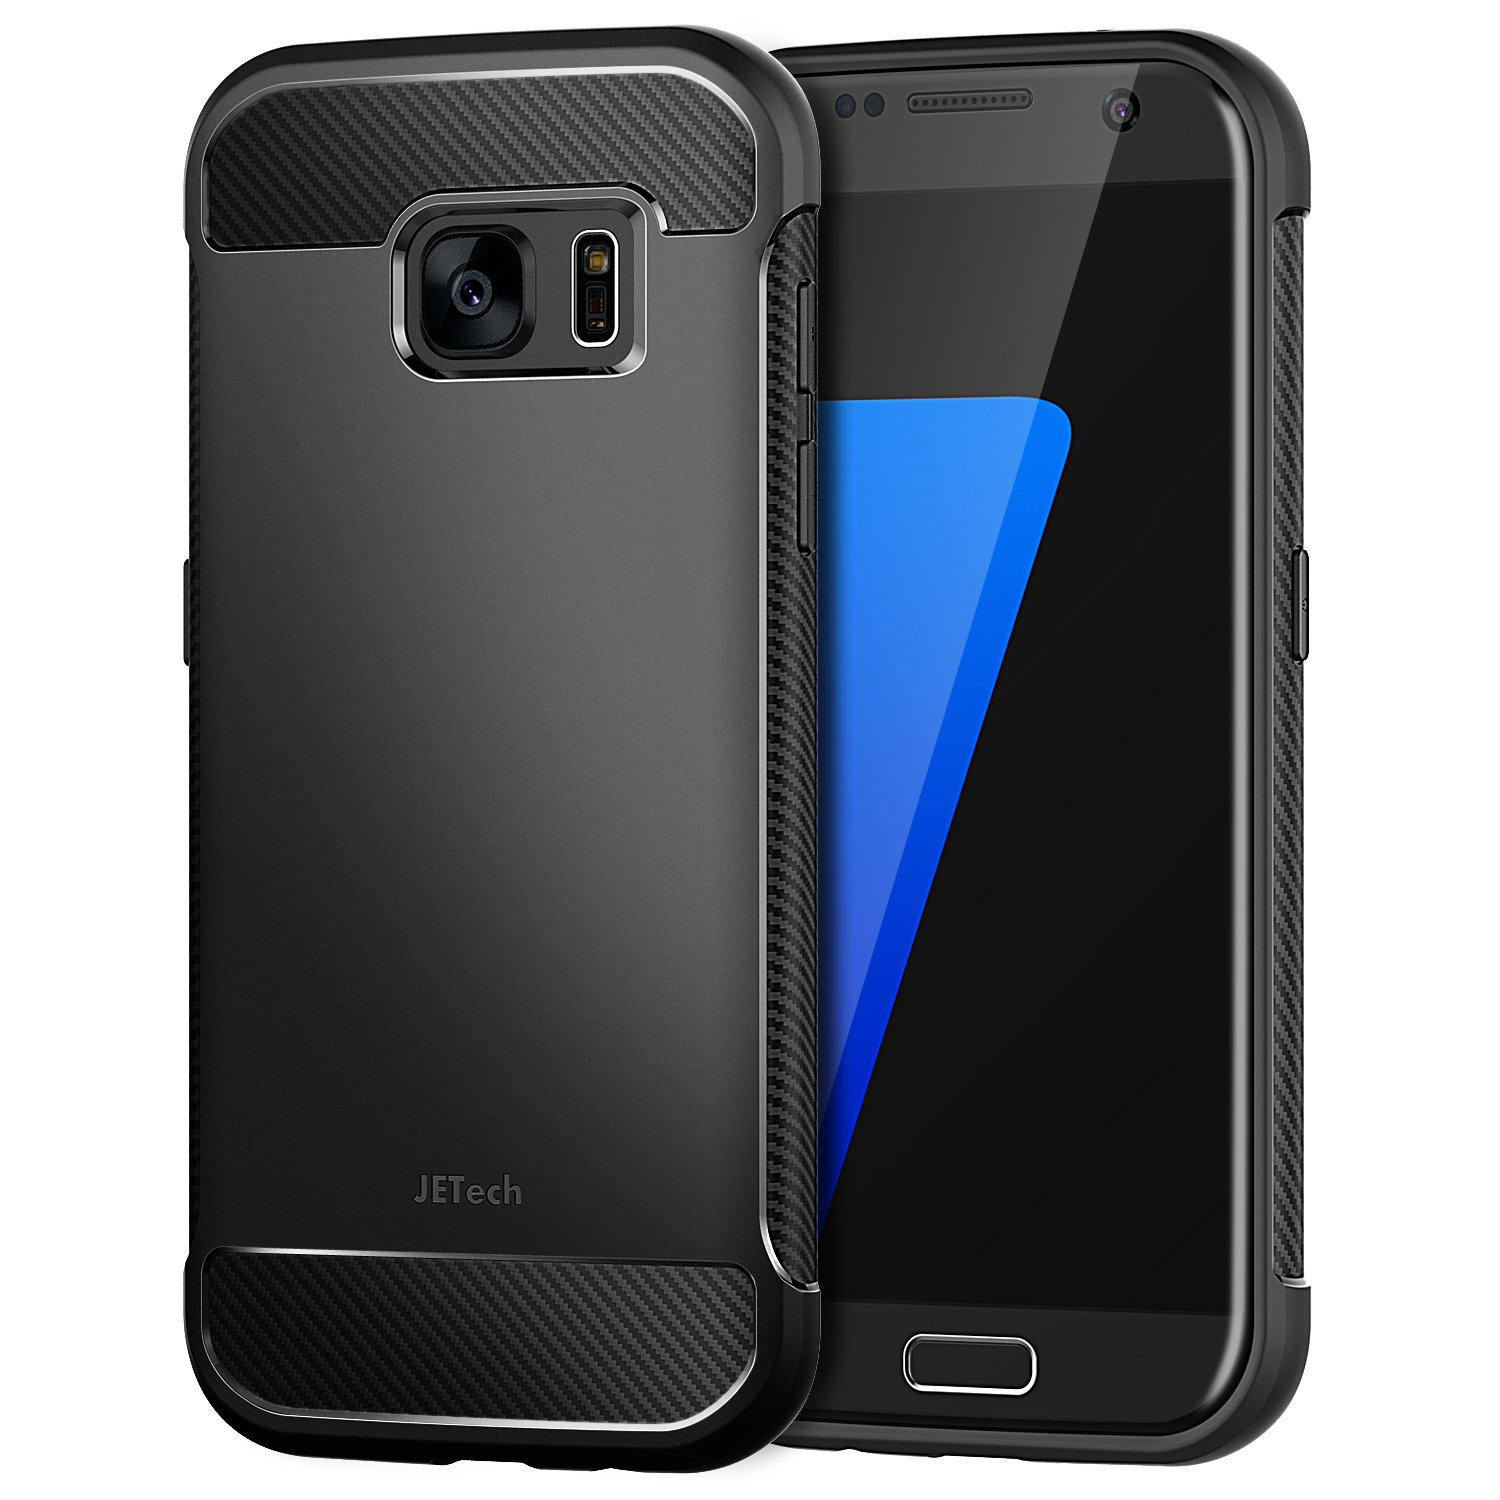 JETech Case for Samsung Galaxy S7, Protective Cover with Shock-Absorption and Carbon Fiber Design, Black 3442-CS-S7-Armor-BK